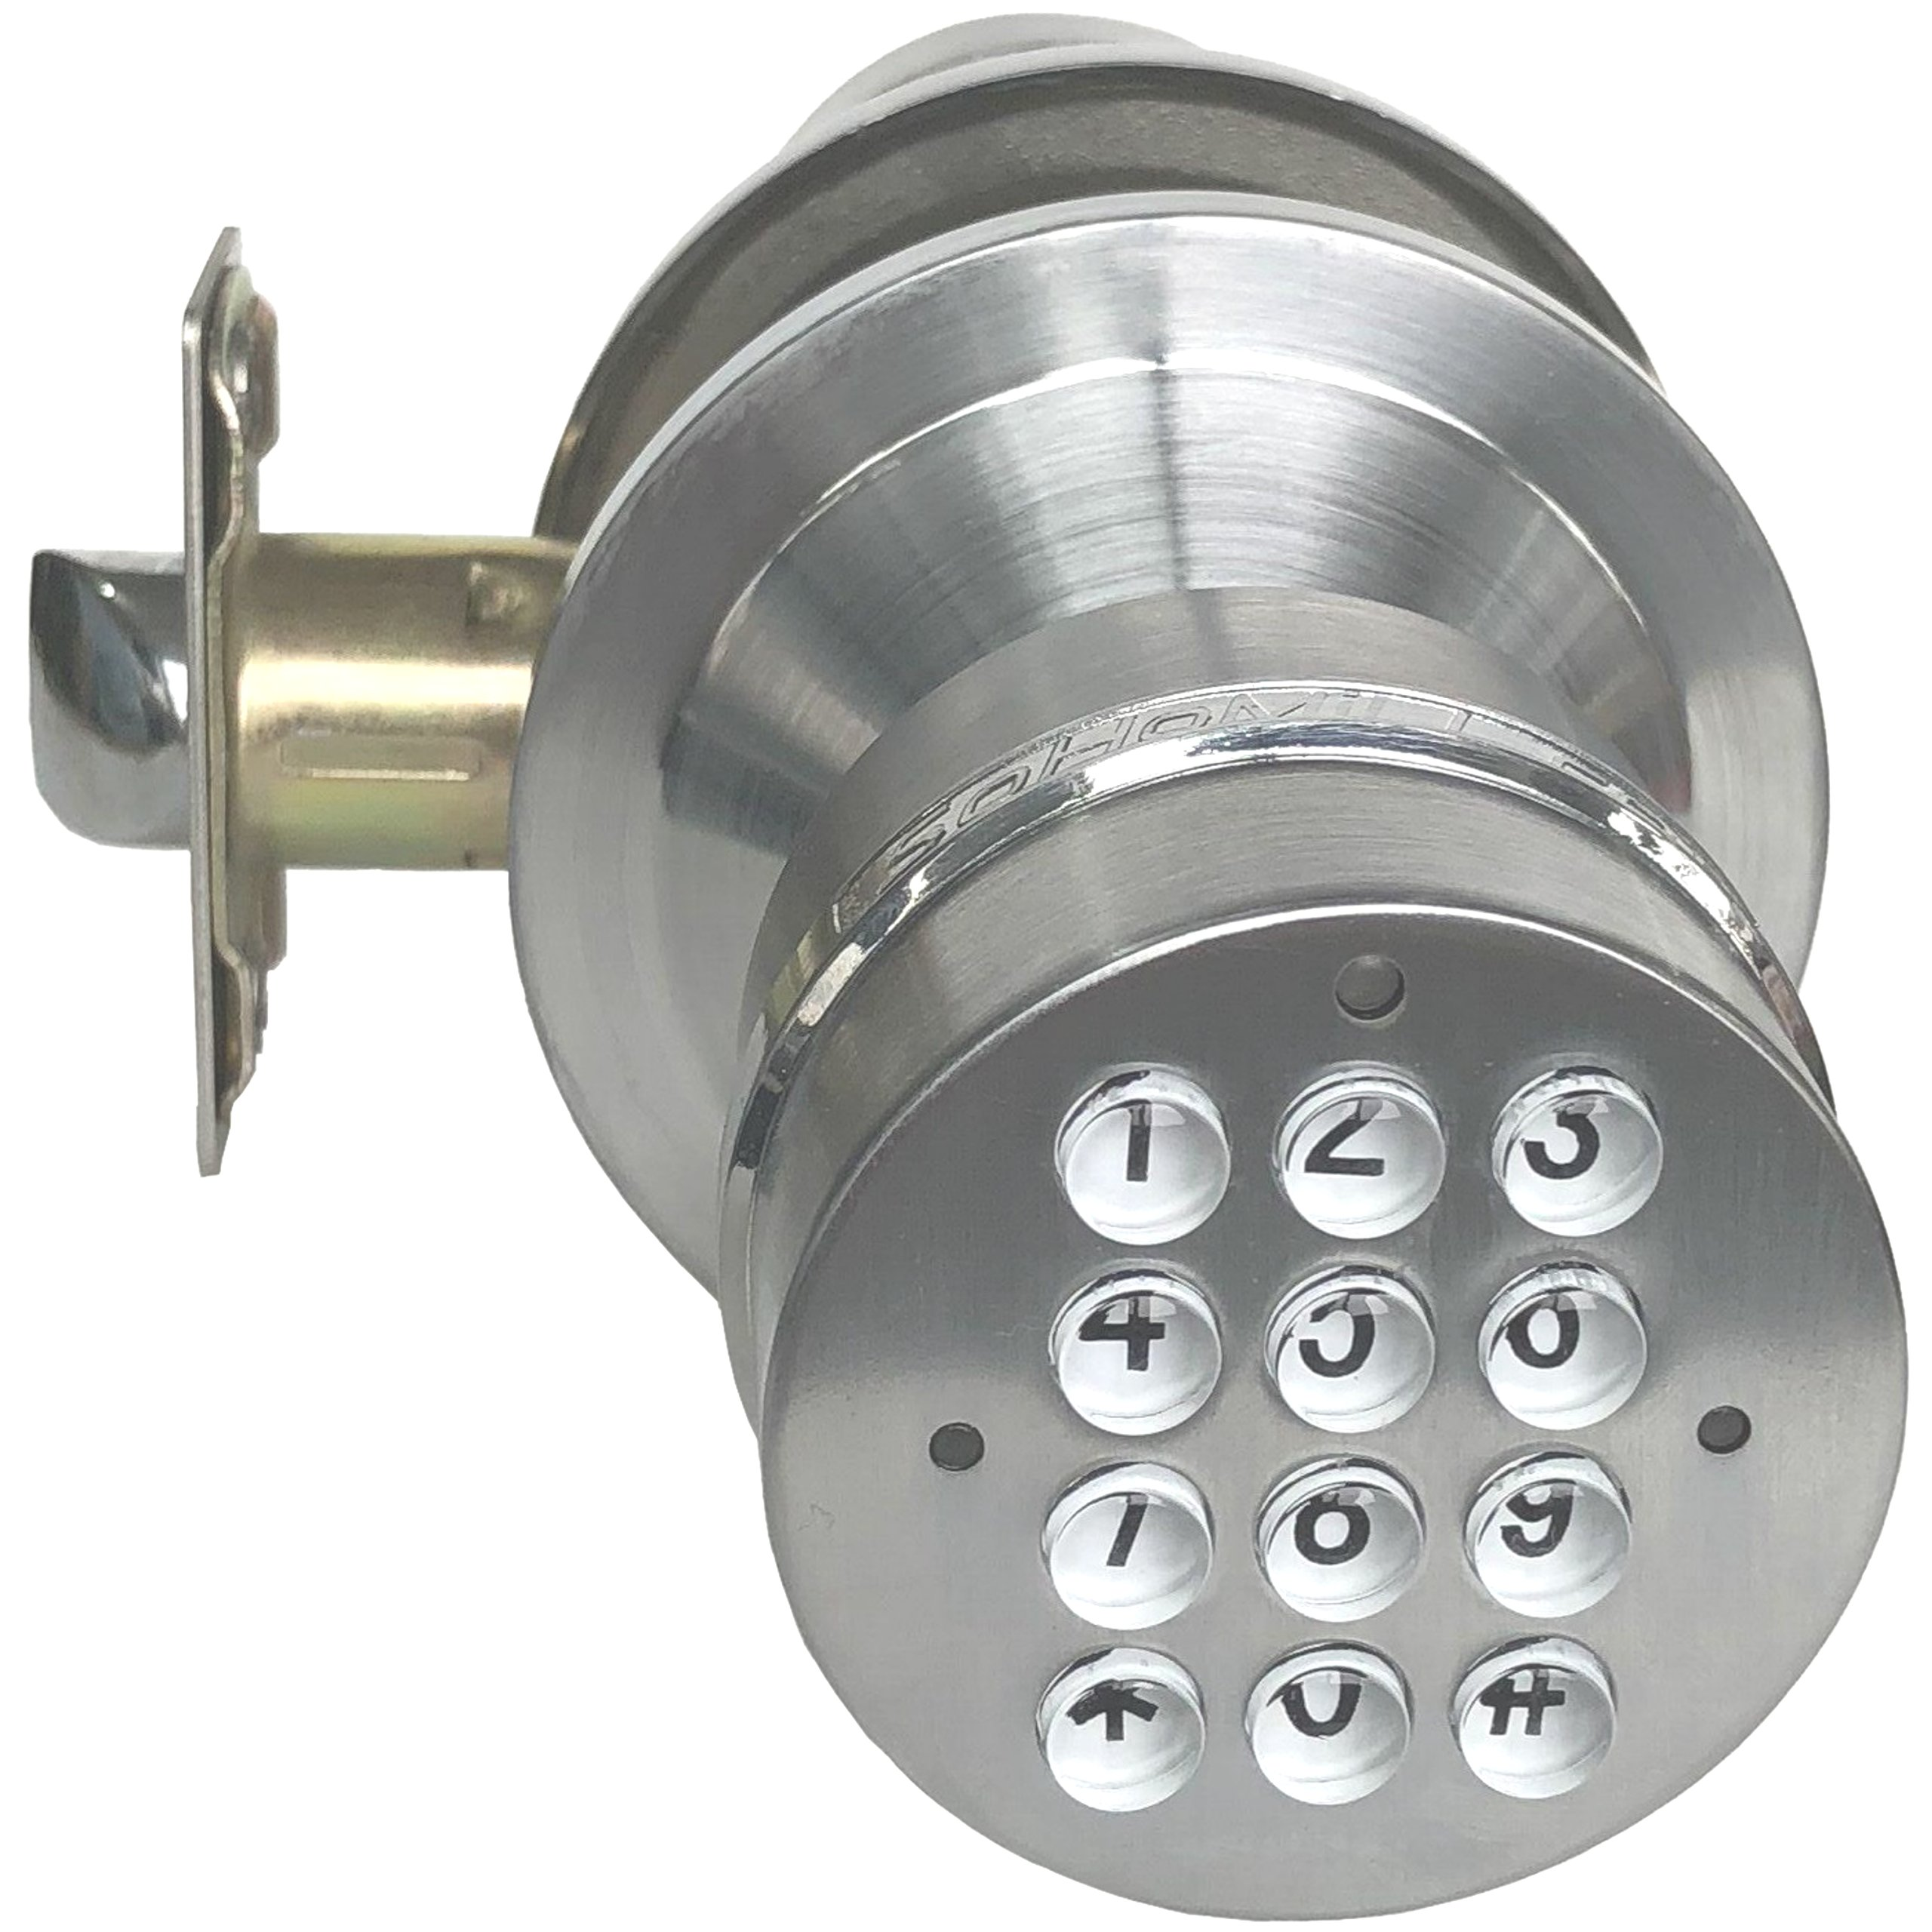 uncategorized knobs sasg door hardware glass on ideas locks of locking knob doors u best and frameless the trend